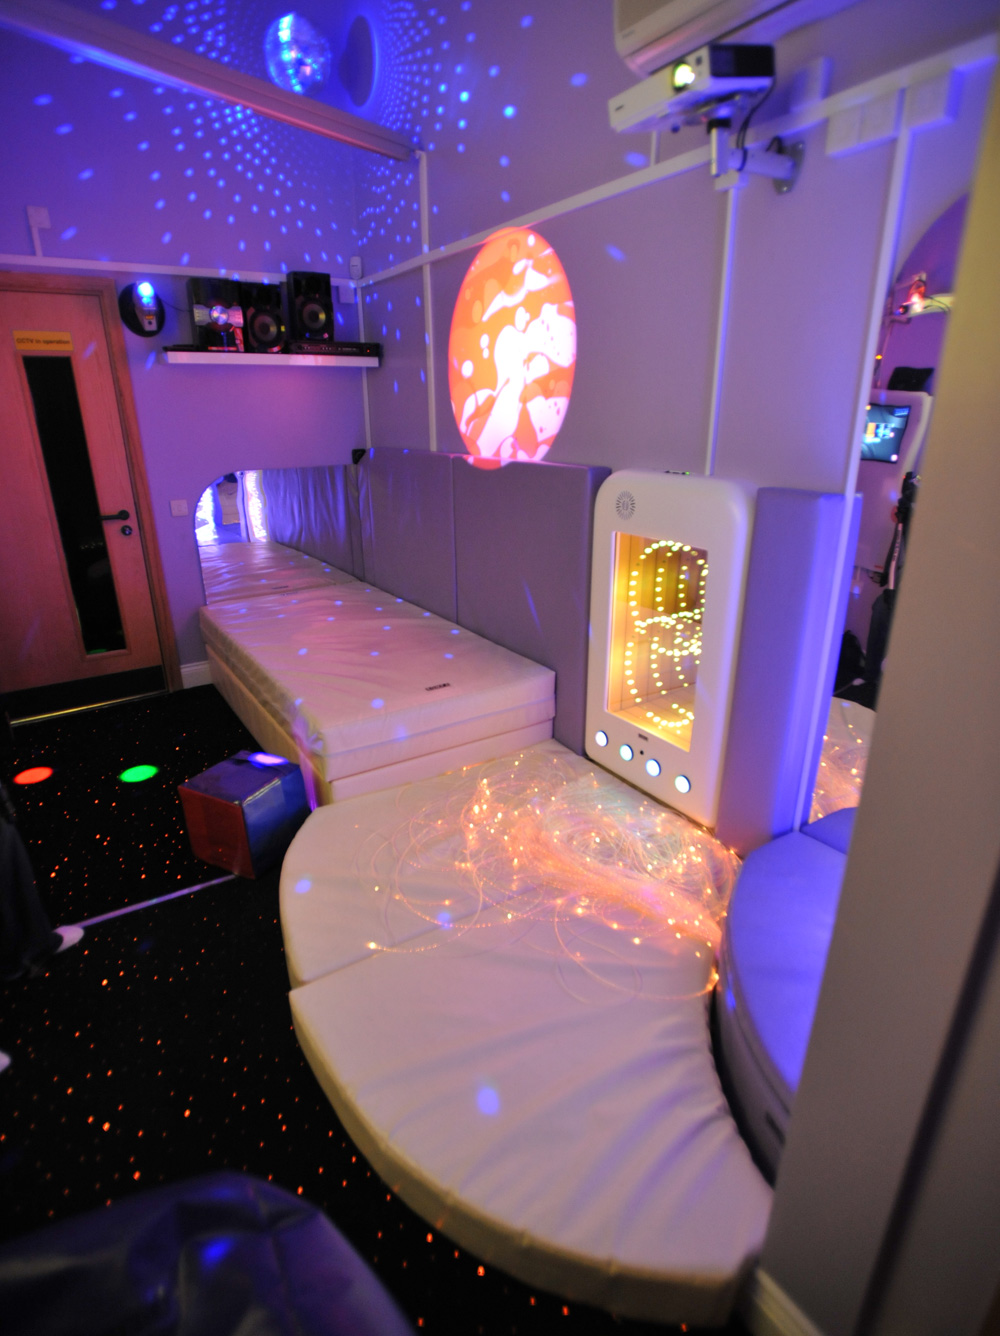 Alan Shearer Centre Sensory Room Snoezelen 174 Multi